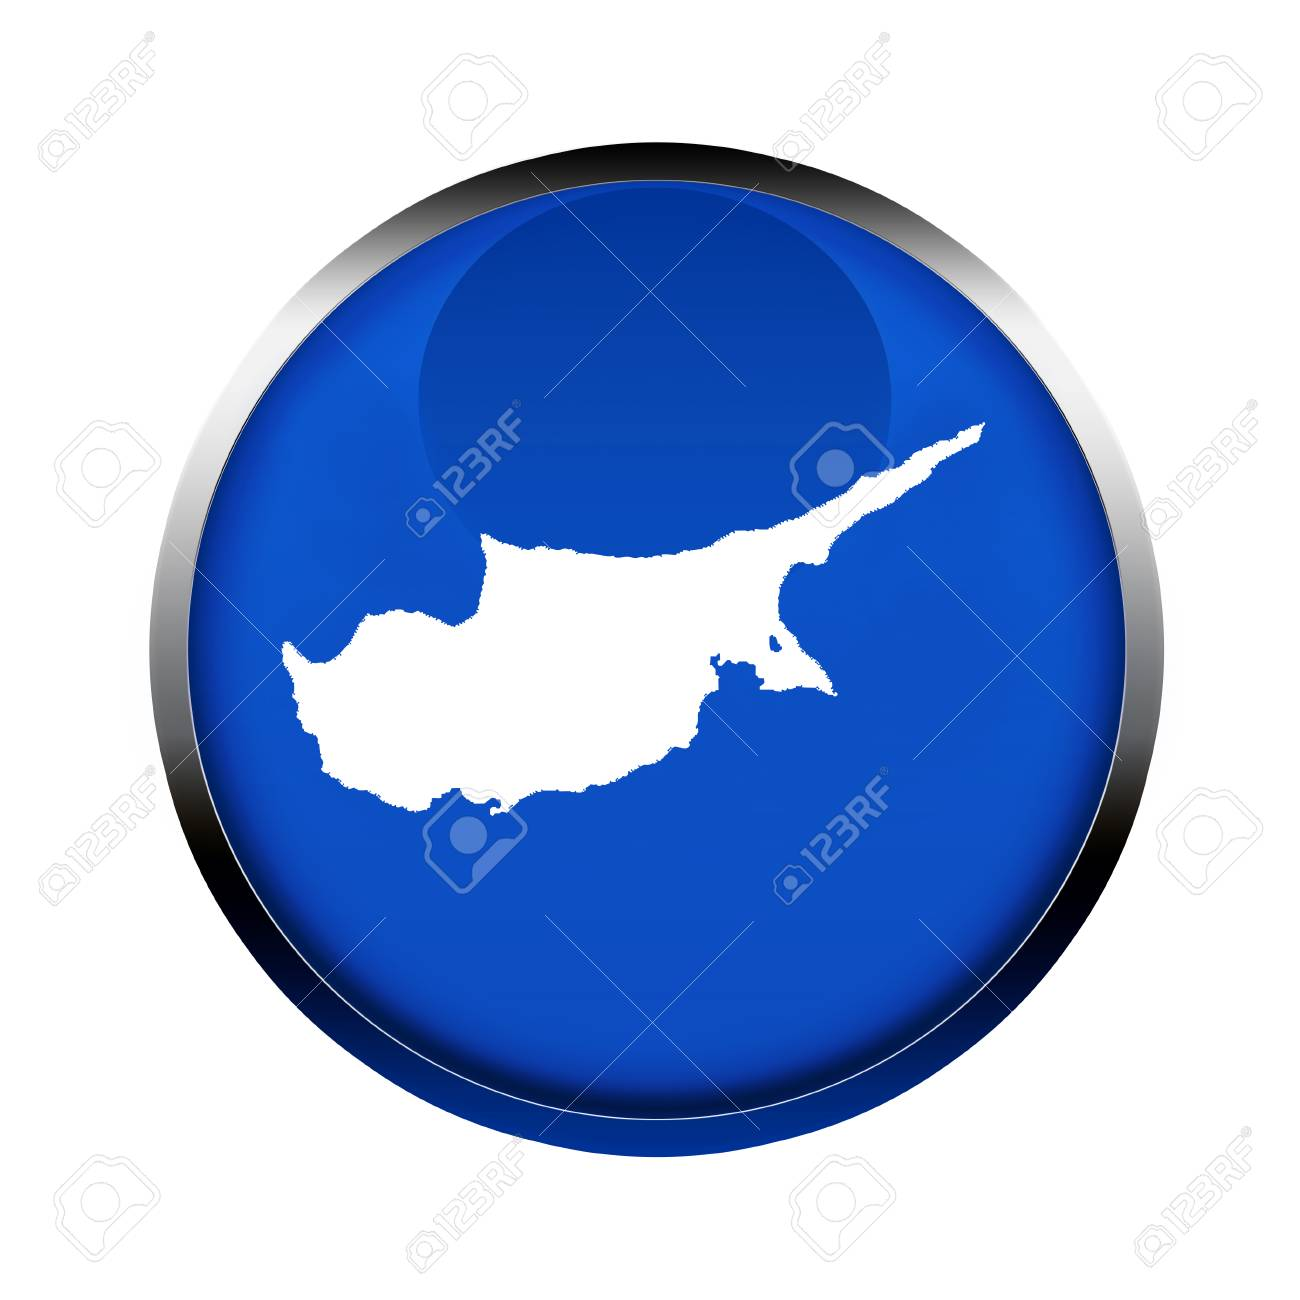 Cyprus Map Button In The Colors Of The European Union  Stock Photo     Cyprus map button in the colors of the European Union  Stock Photo    61030523